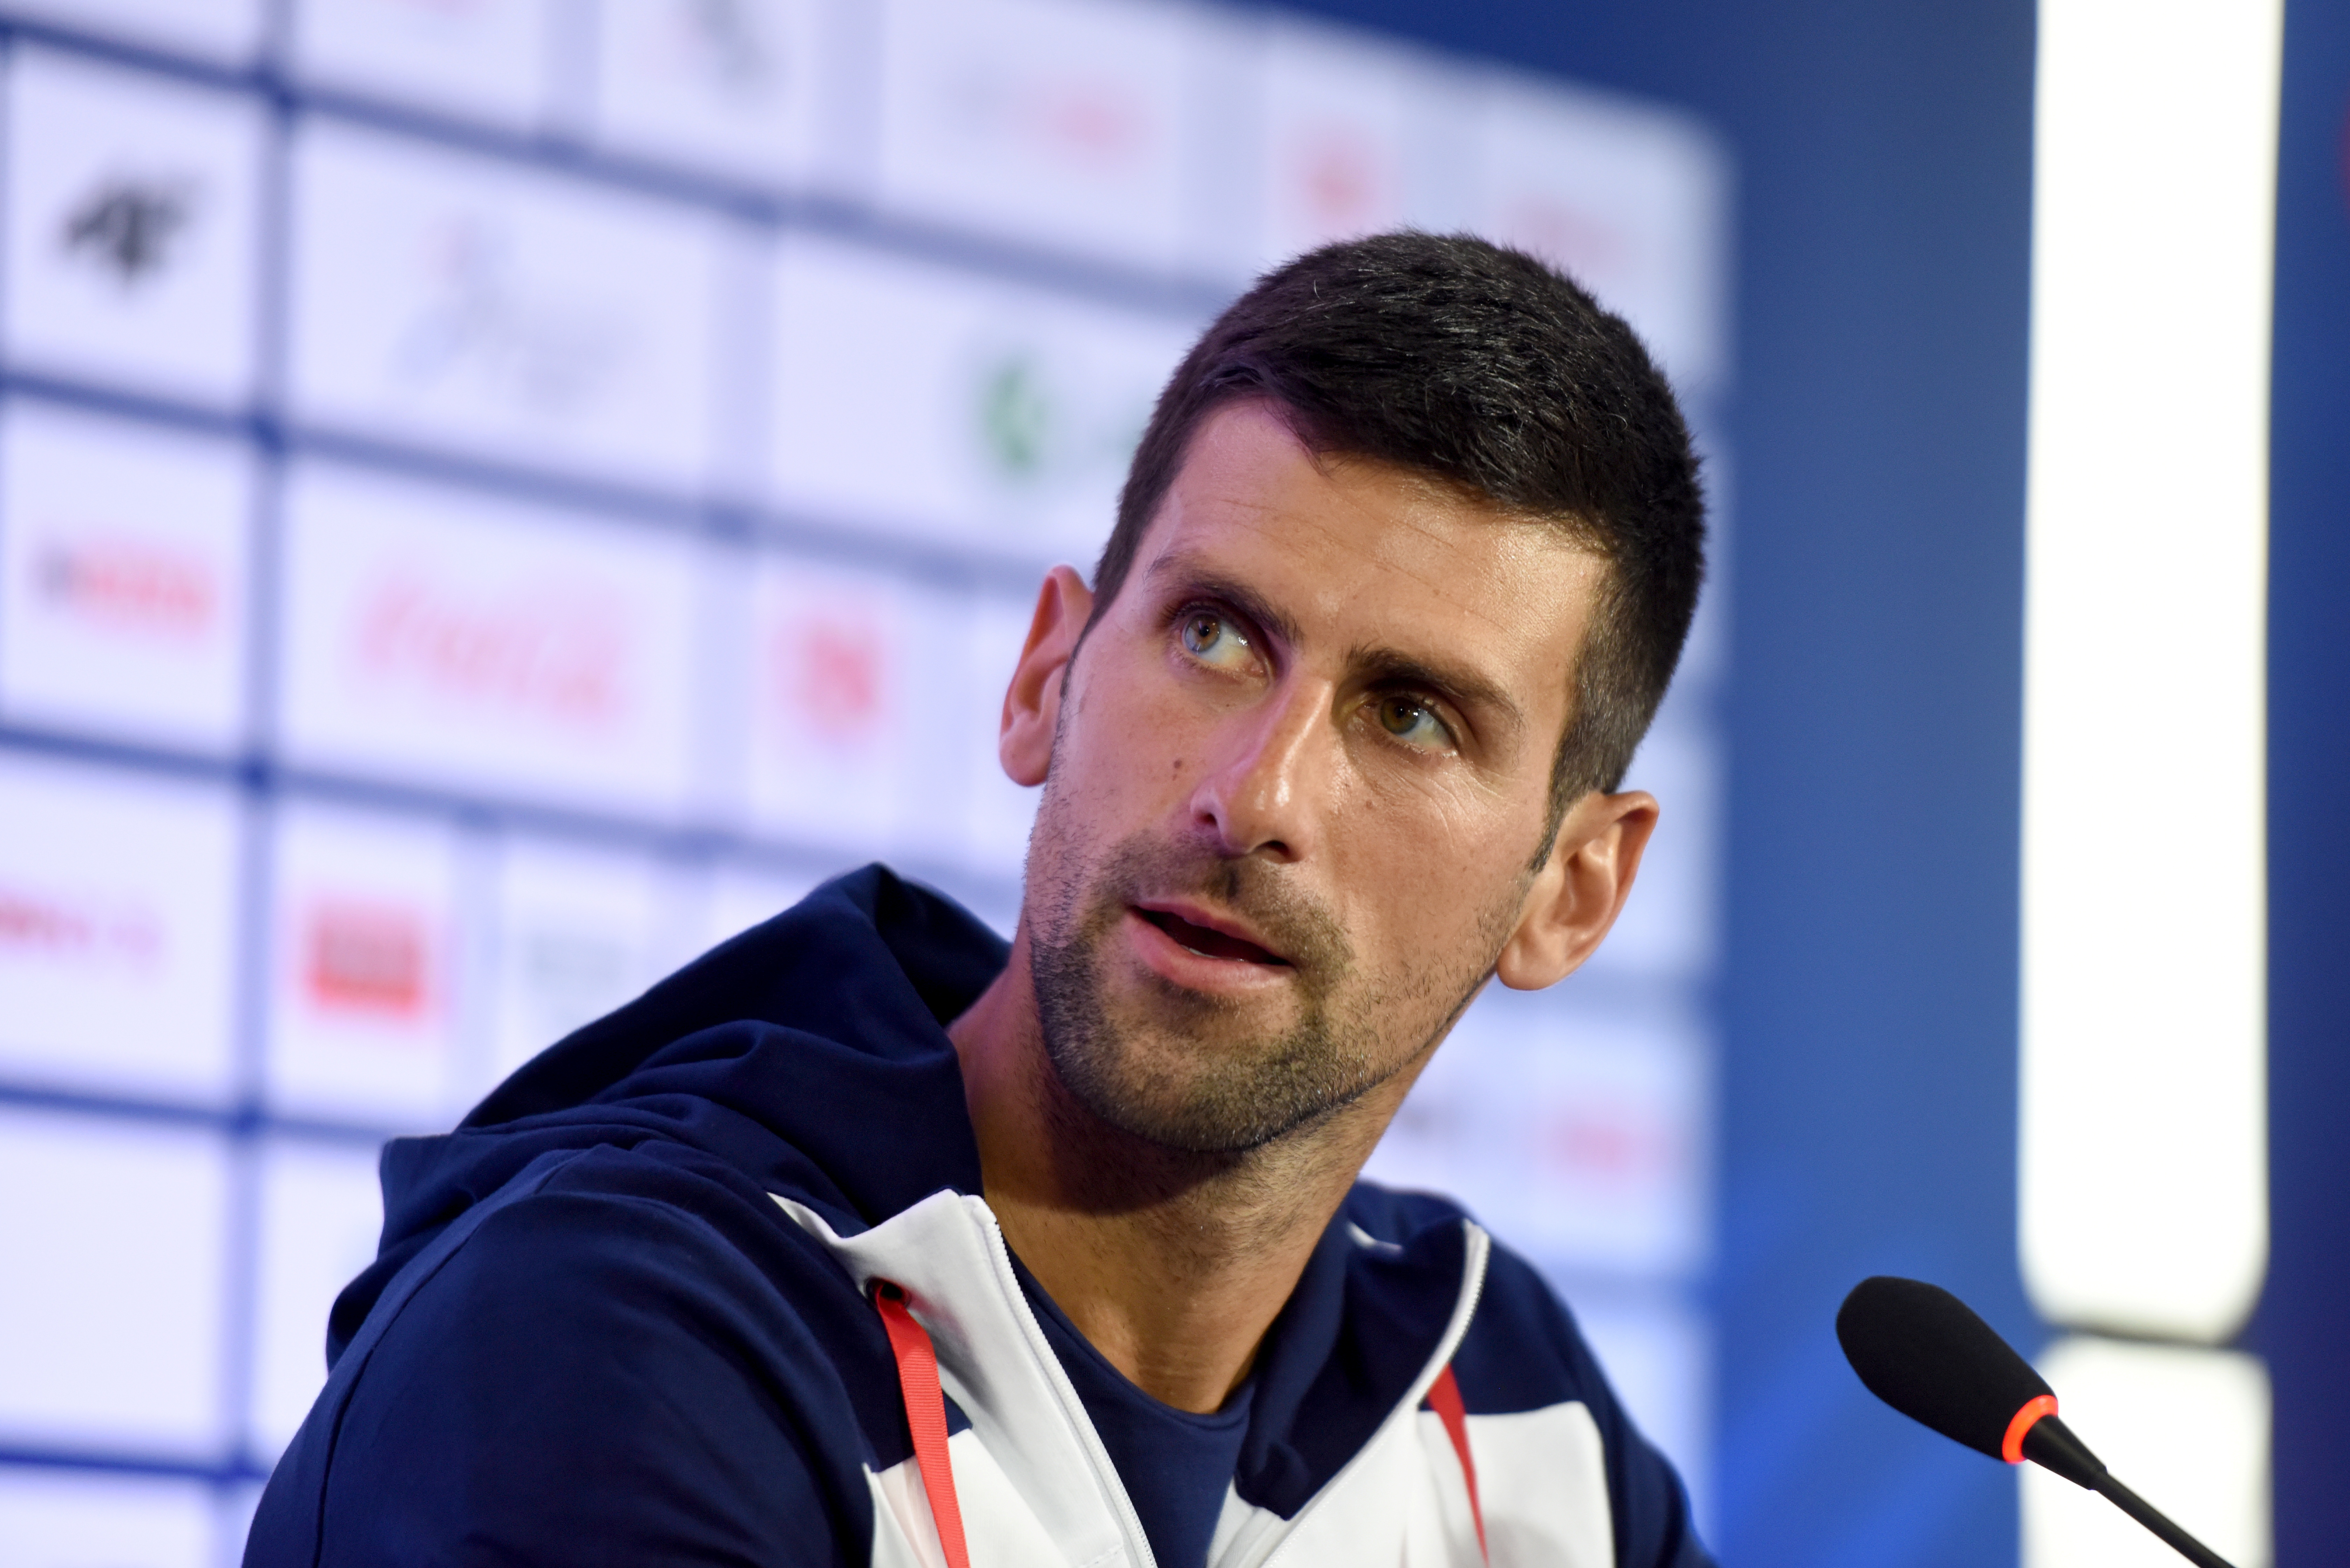 Tennis player Novak Djokovic speaks to the media before traveling to Japan where he will represent Serbia at the Tokyo 2020 Olympics, in Belgrade, Serbia, July 20, 2021. REUTERS/Zorana Jevtic